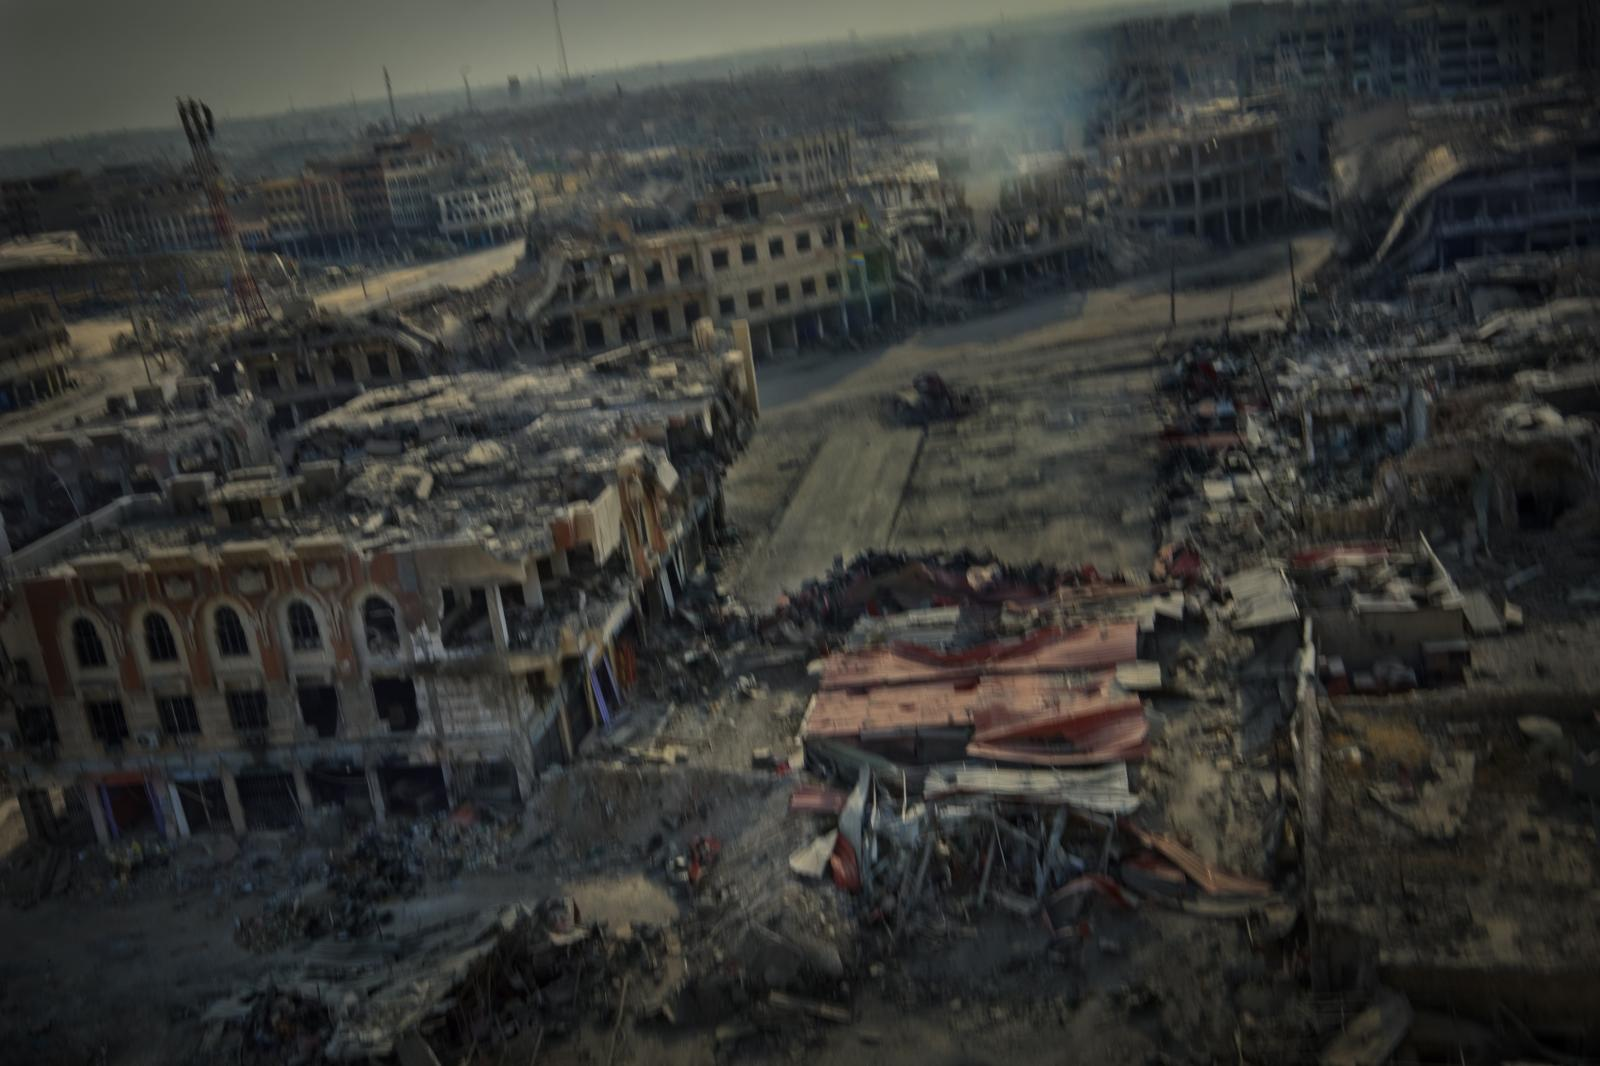 View of the destroyed Old City of Mosul. The new part of the city was barely affected in comparison (Iraq, 2017)